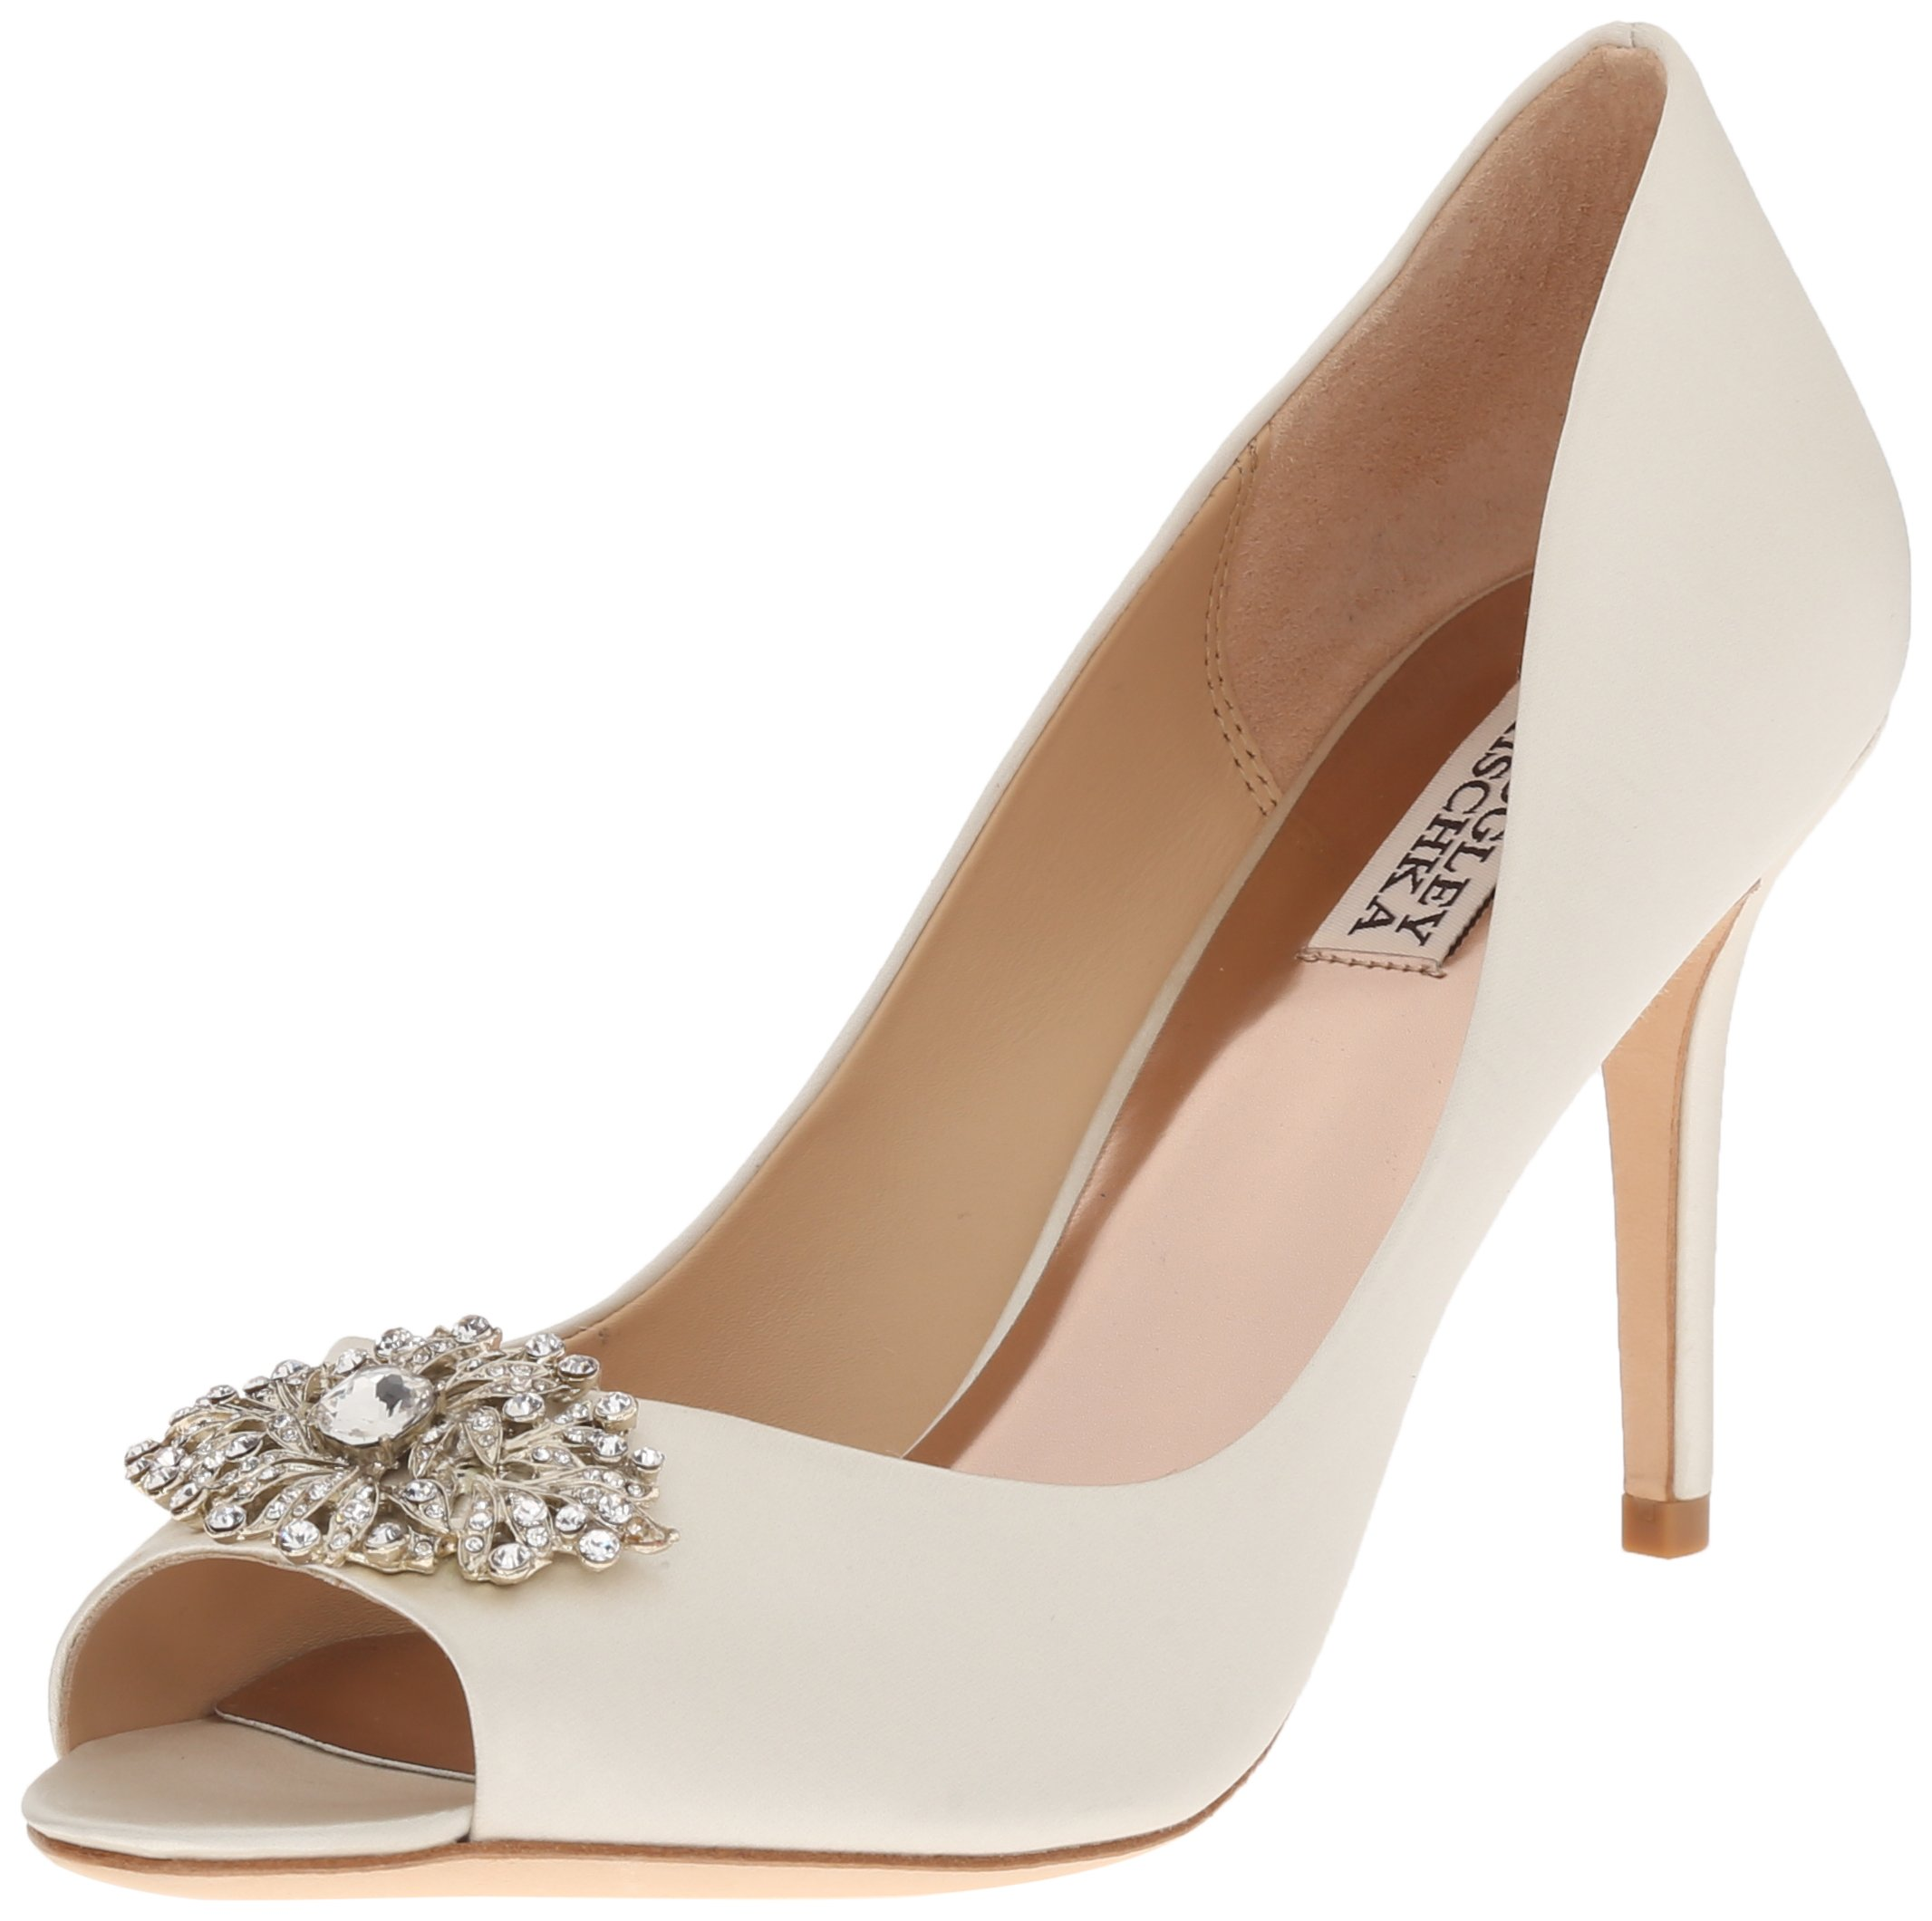 Badgley Mischka Women's Accent Embellished Satin Pump Peep Toe Heel, Ivory, 5 M US by Badgley Mischka